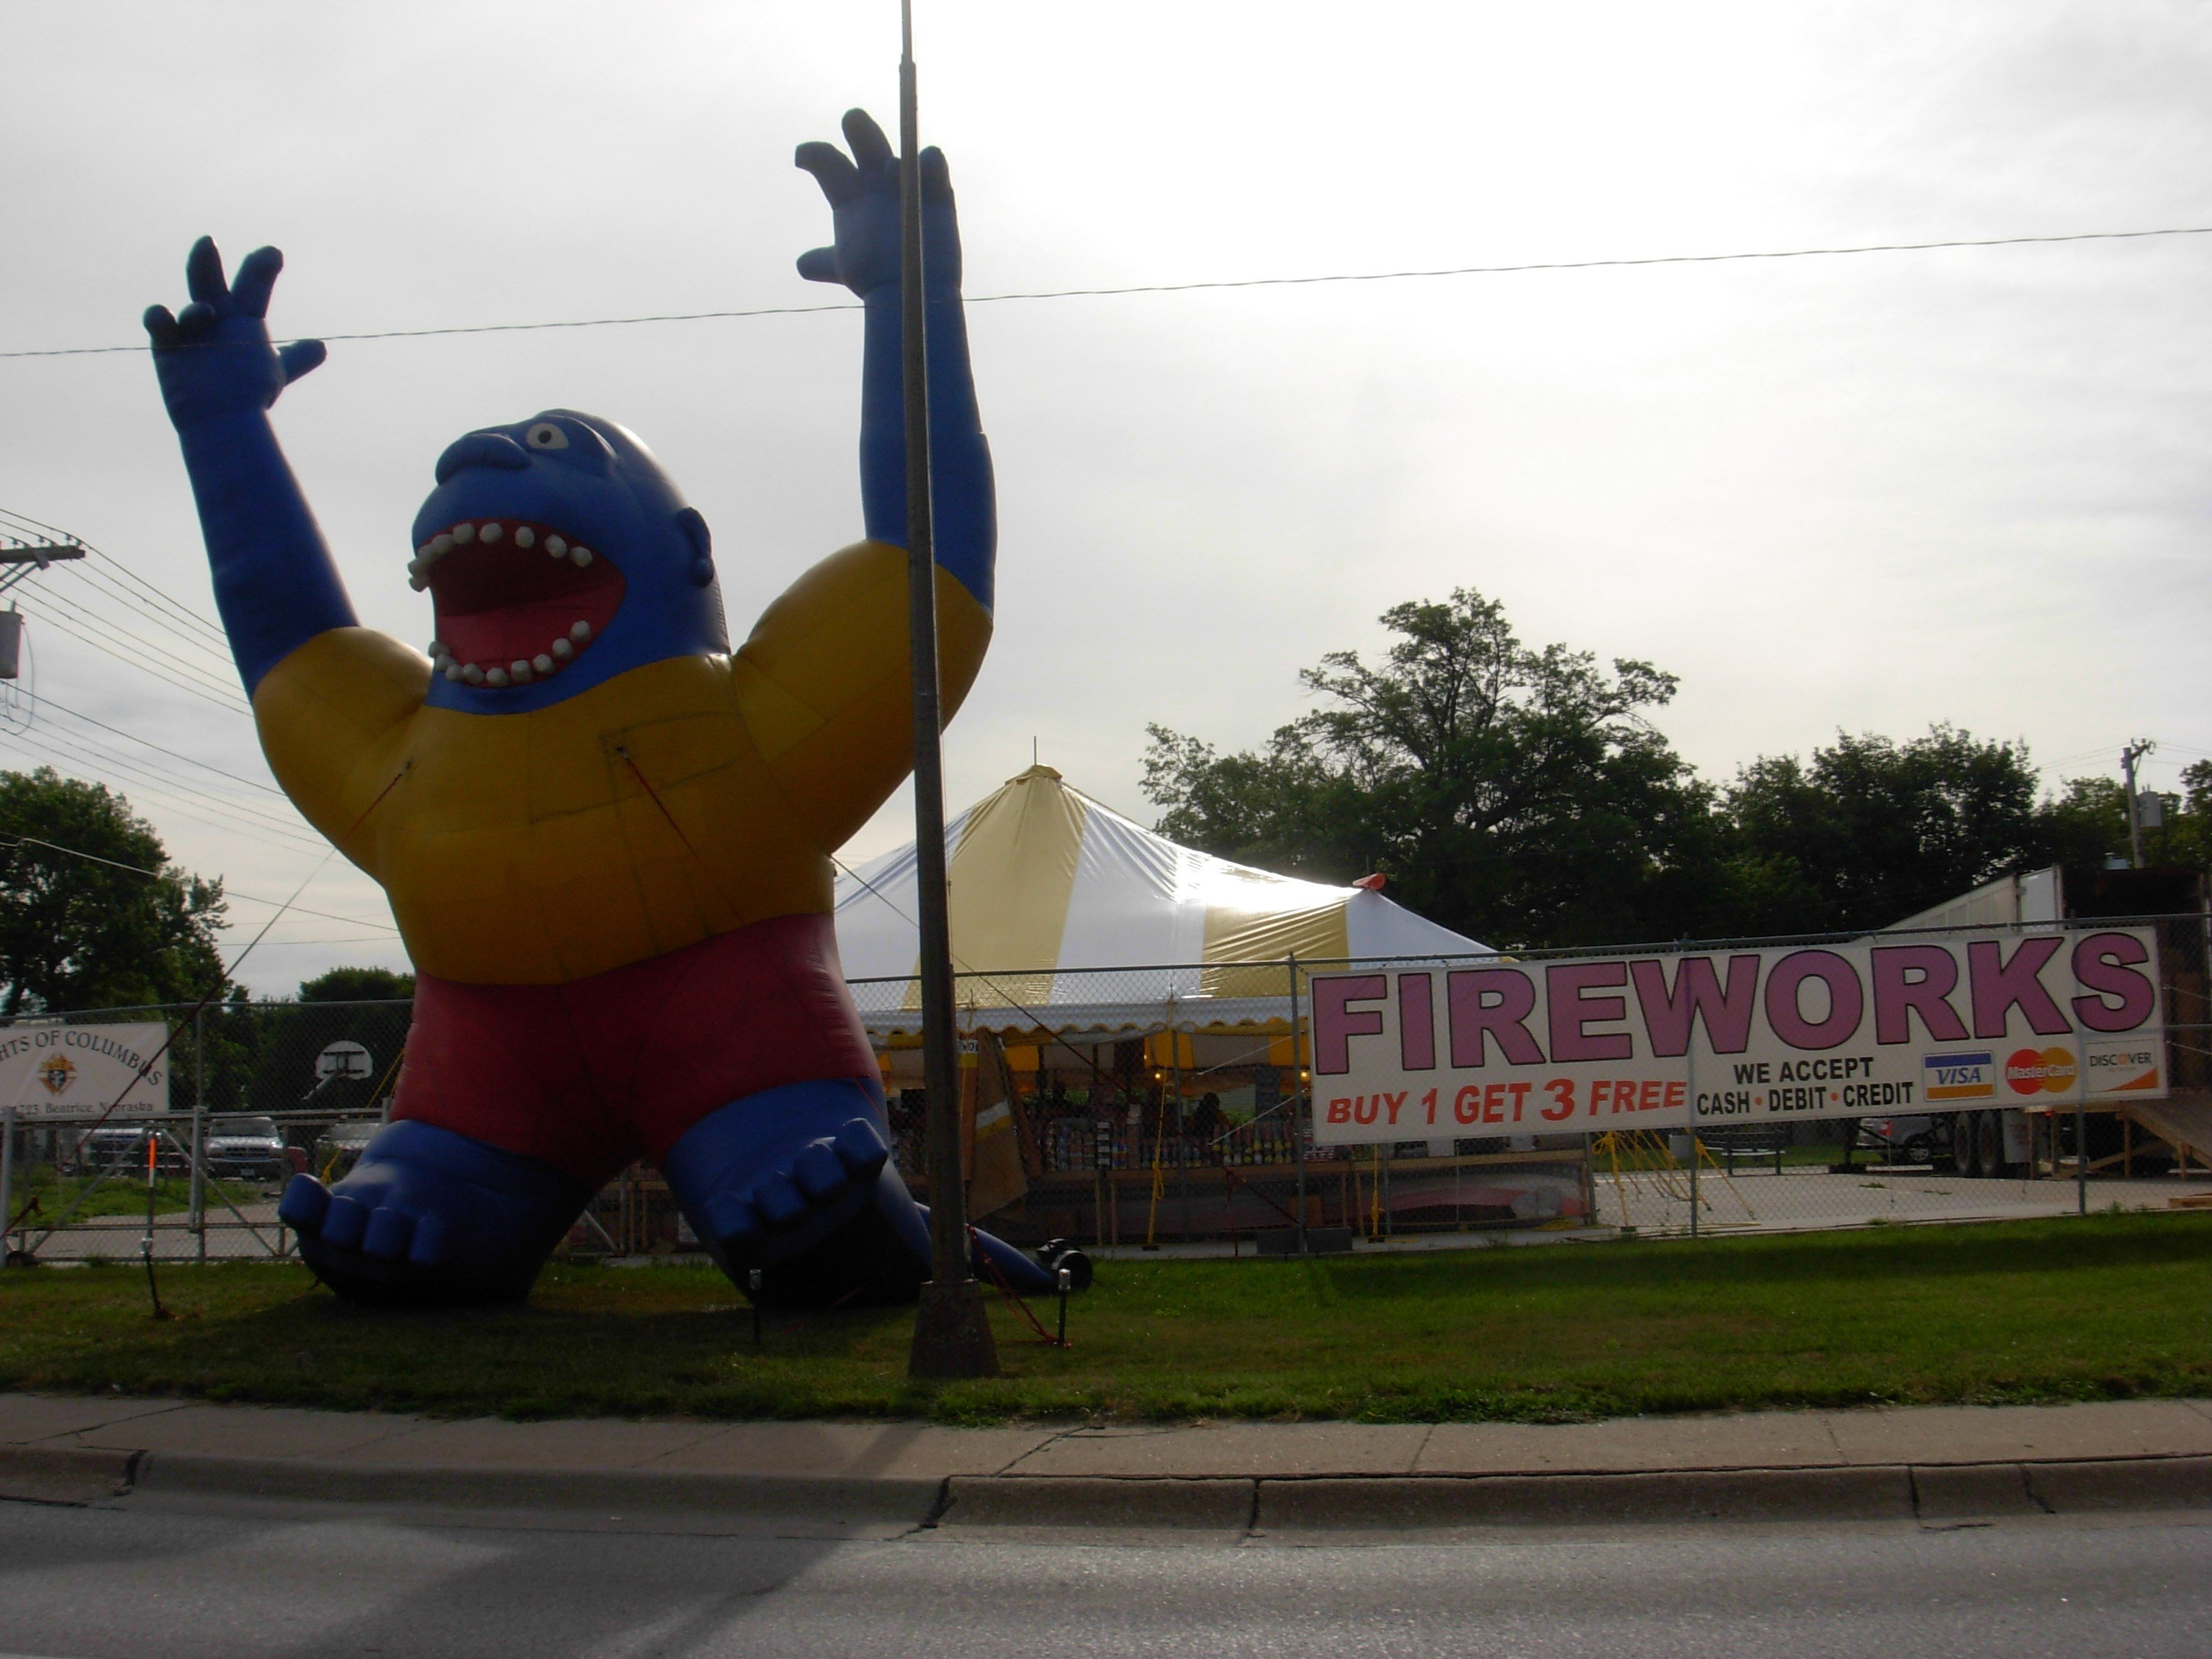 Fireworks sales to start soon, with expanded list of items in Nebraska